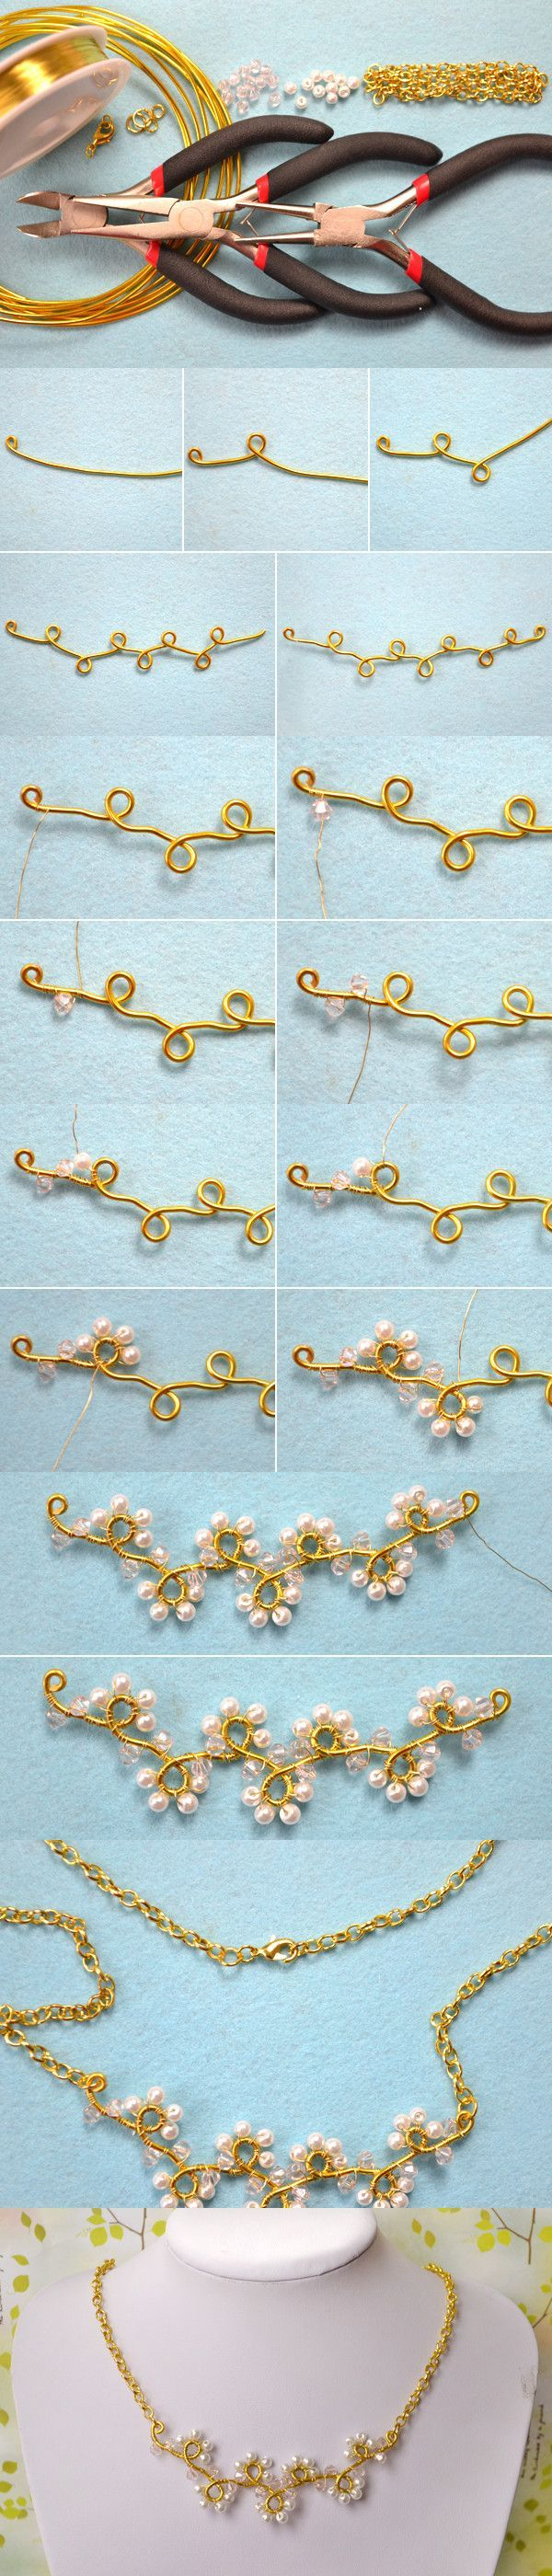 Spring Jewelry Design on How to Make a Wire Flower Vine Necklace with Beads from...